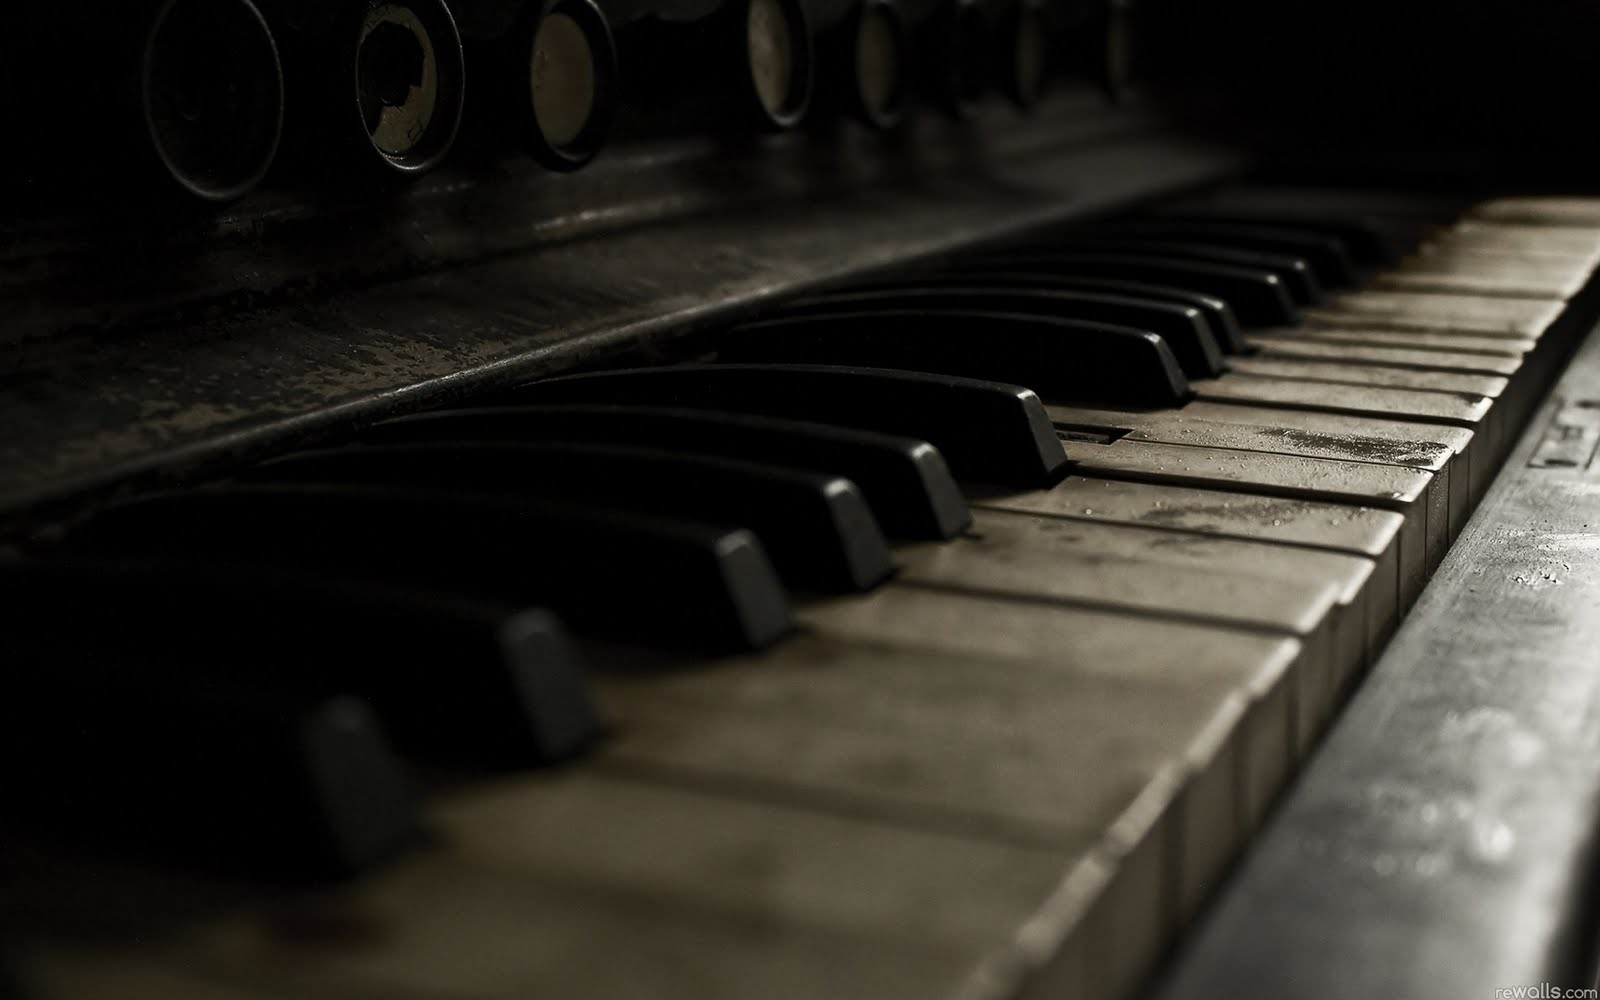 Norbi 39 s blog september 2011 - Cool piano backgrounds ...